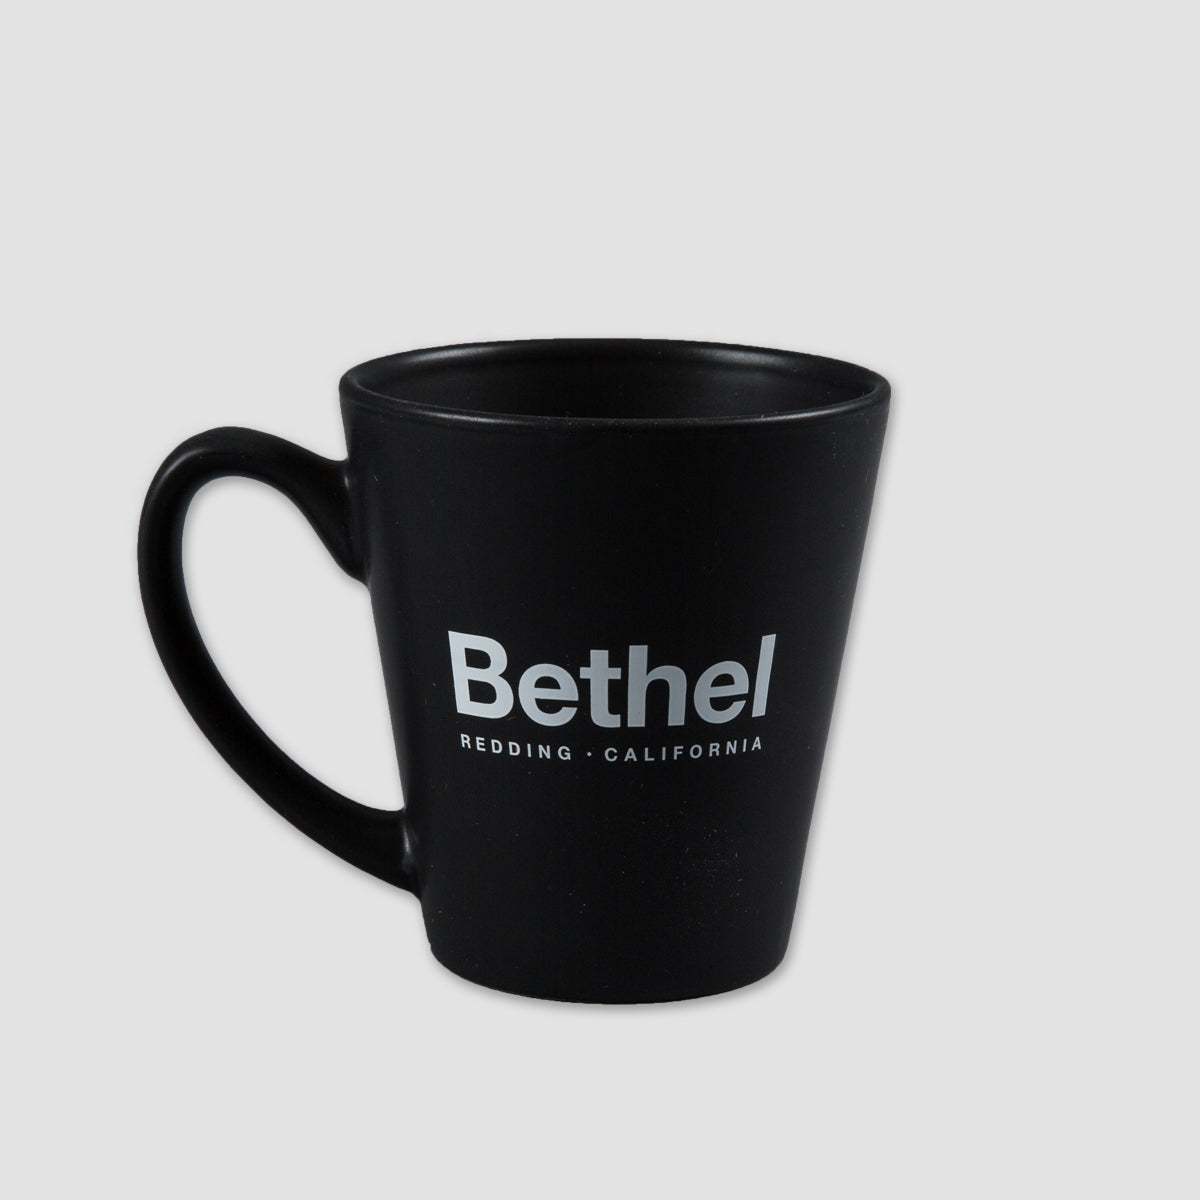 Bethel Redding Mug